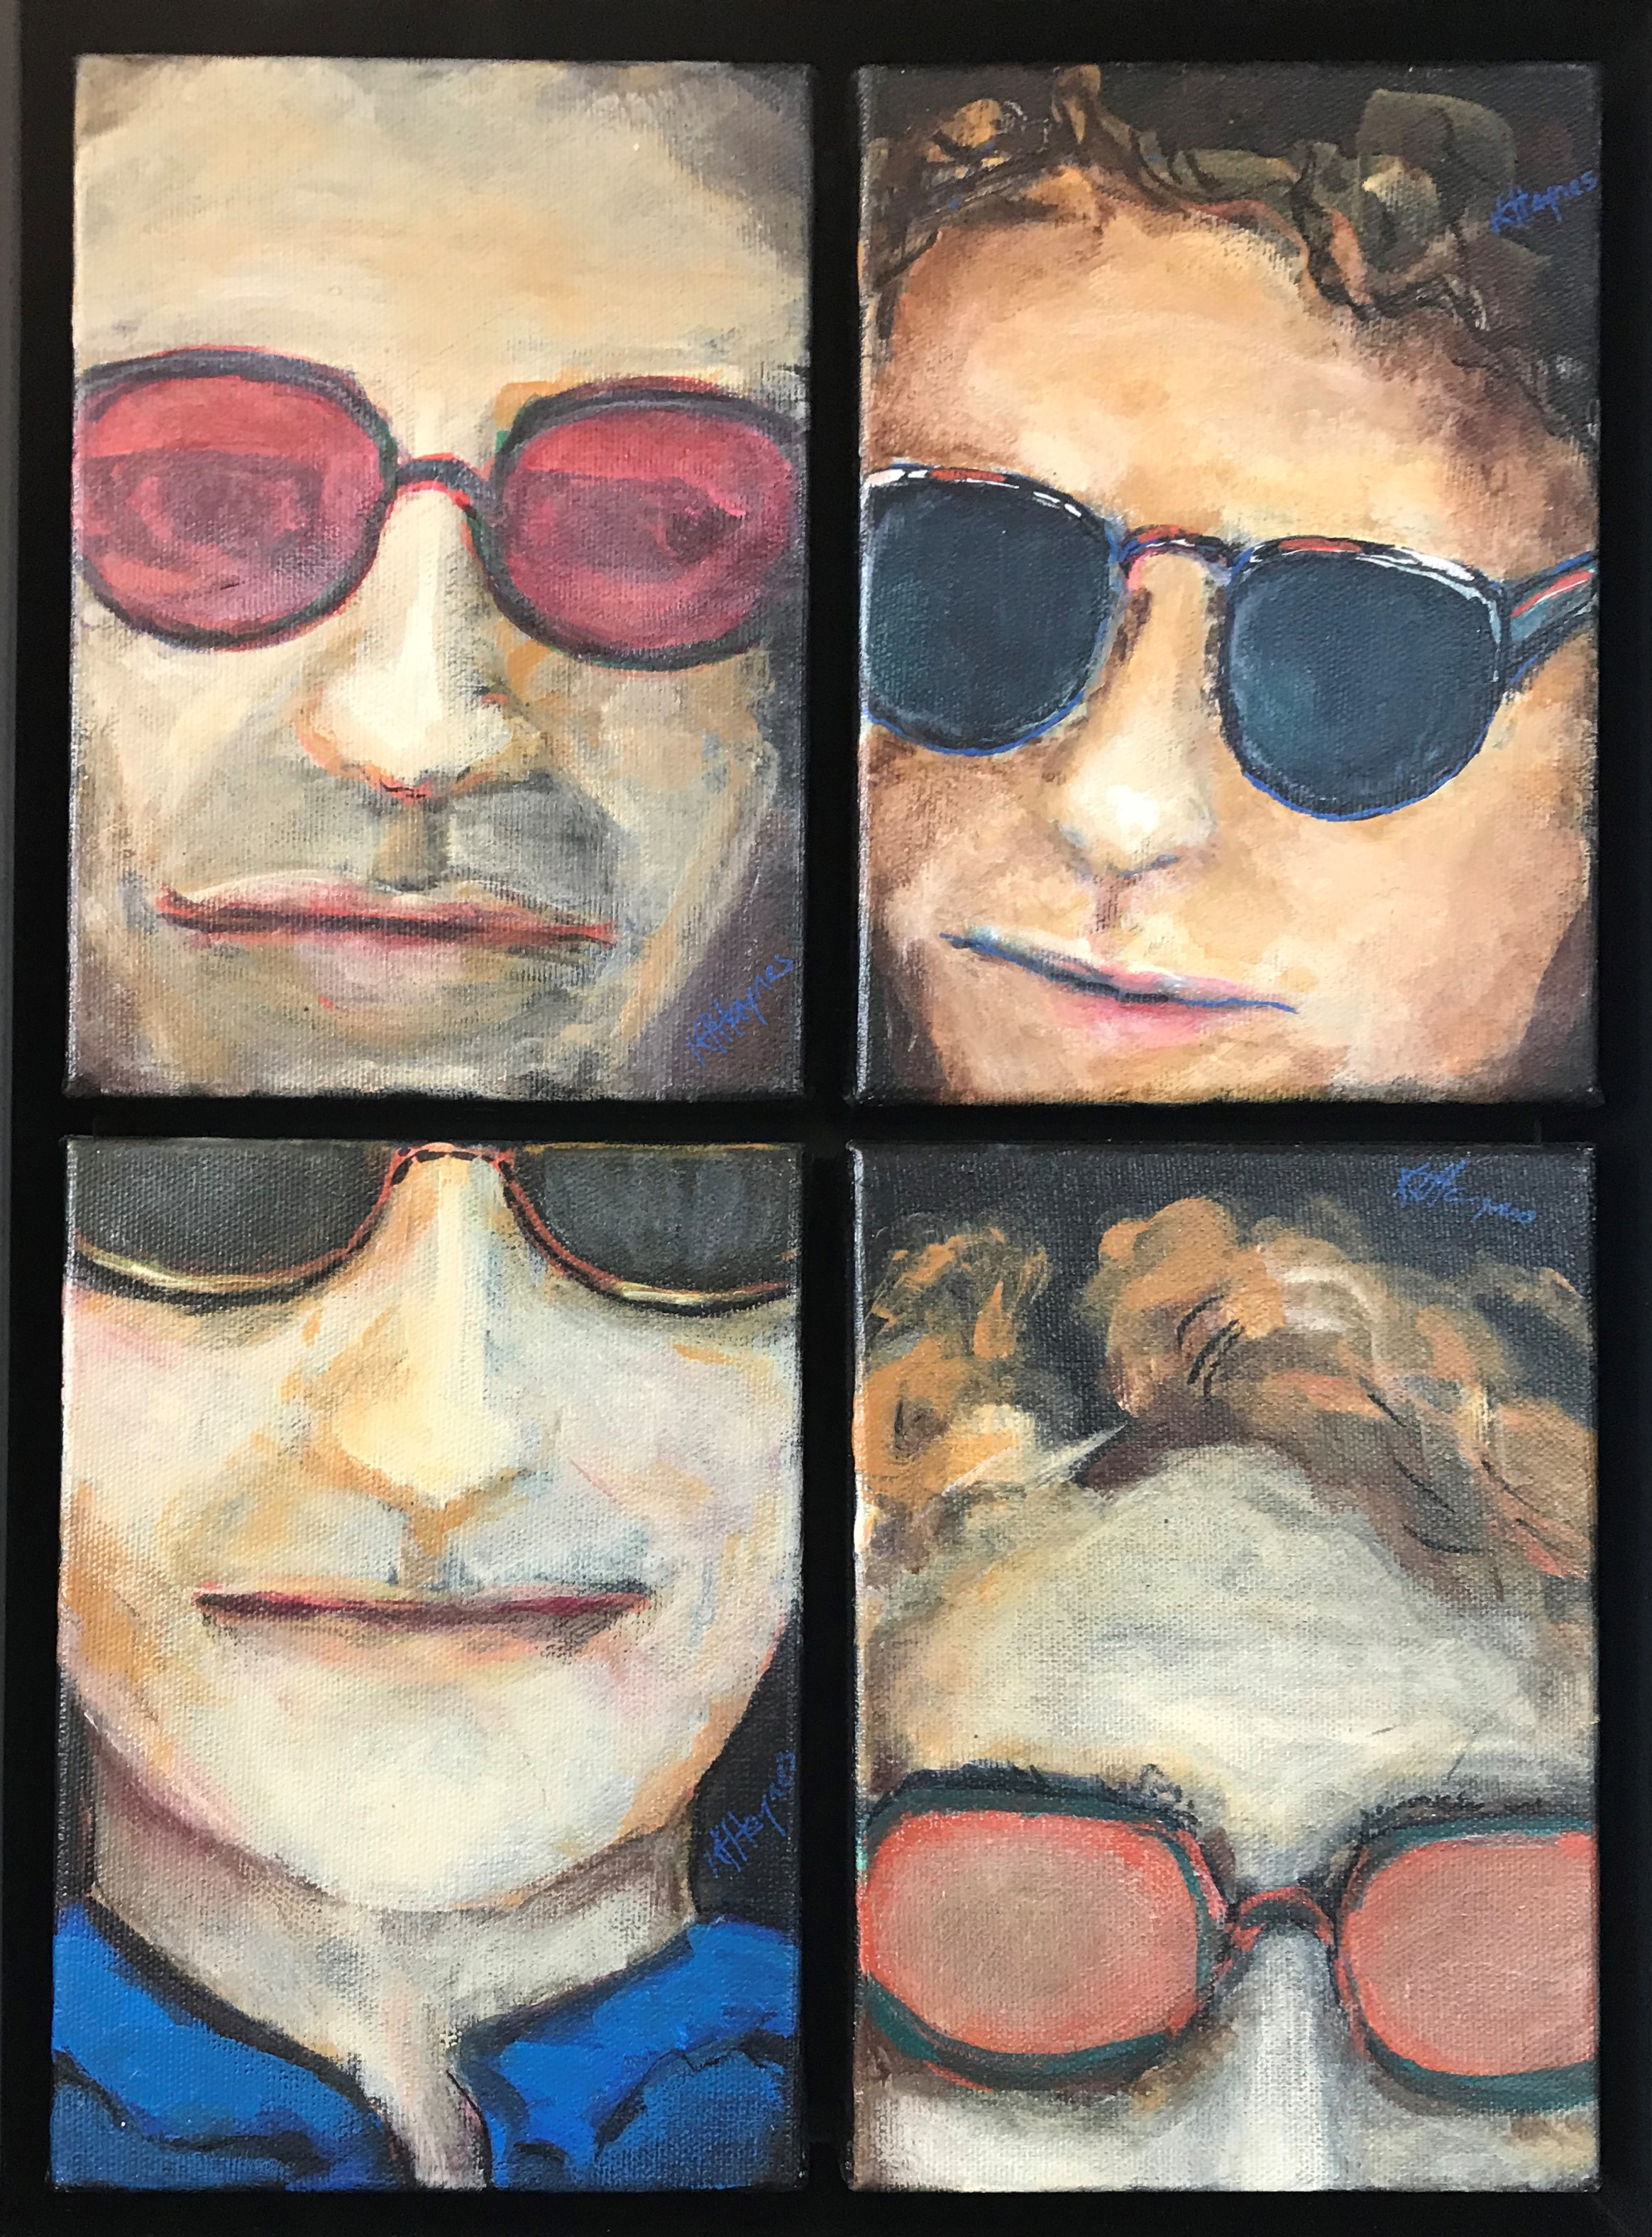 "Sunglass Men 1:   Quadriptych - framed - 11.5 x 15.5"" - acrylic on canvas"